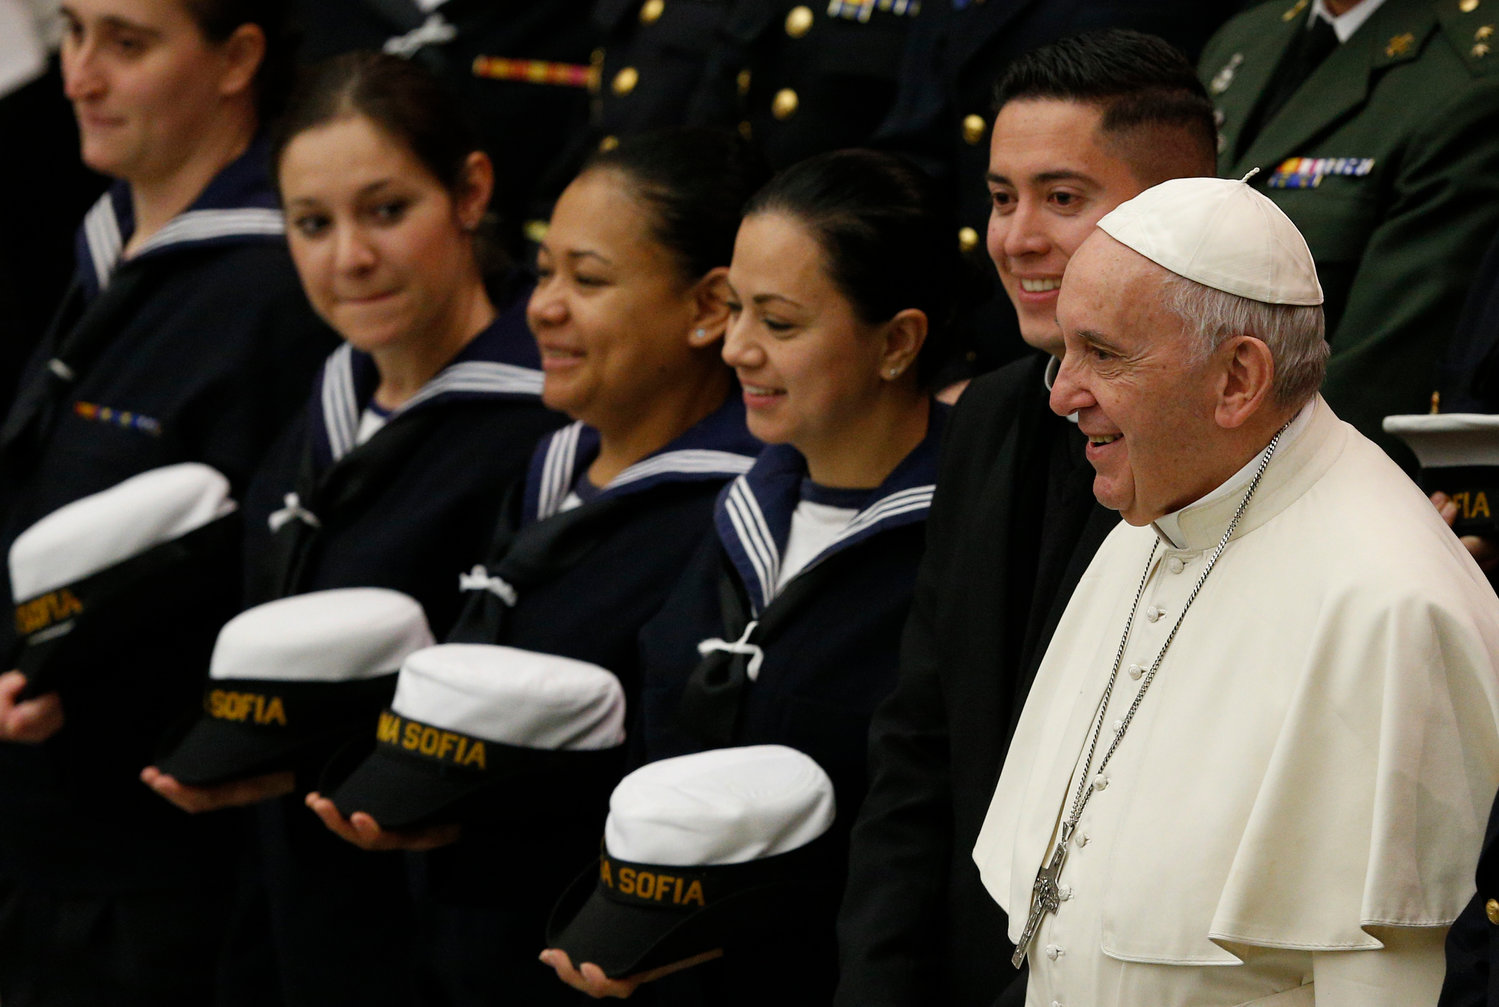 Pope Francis poses with sailors during his general audience in Paul VI hall at the Vatican Jan. 2.